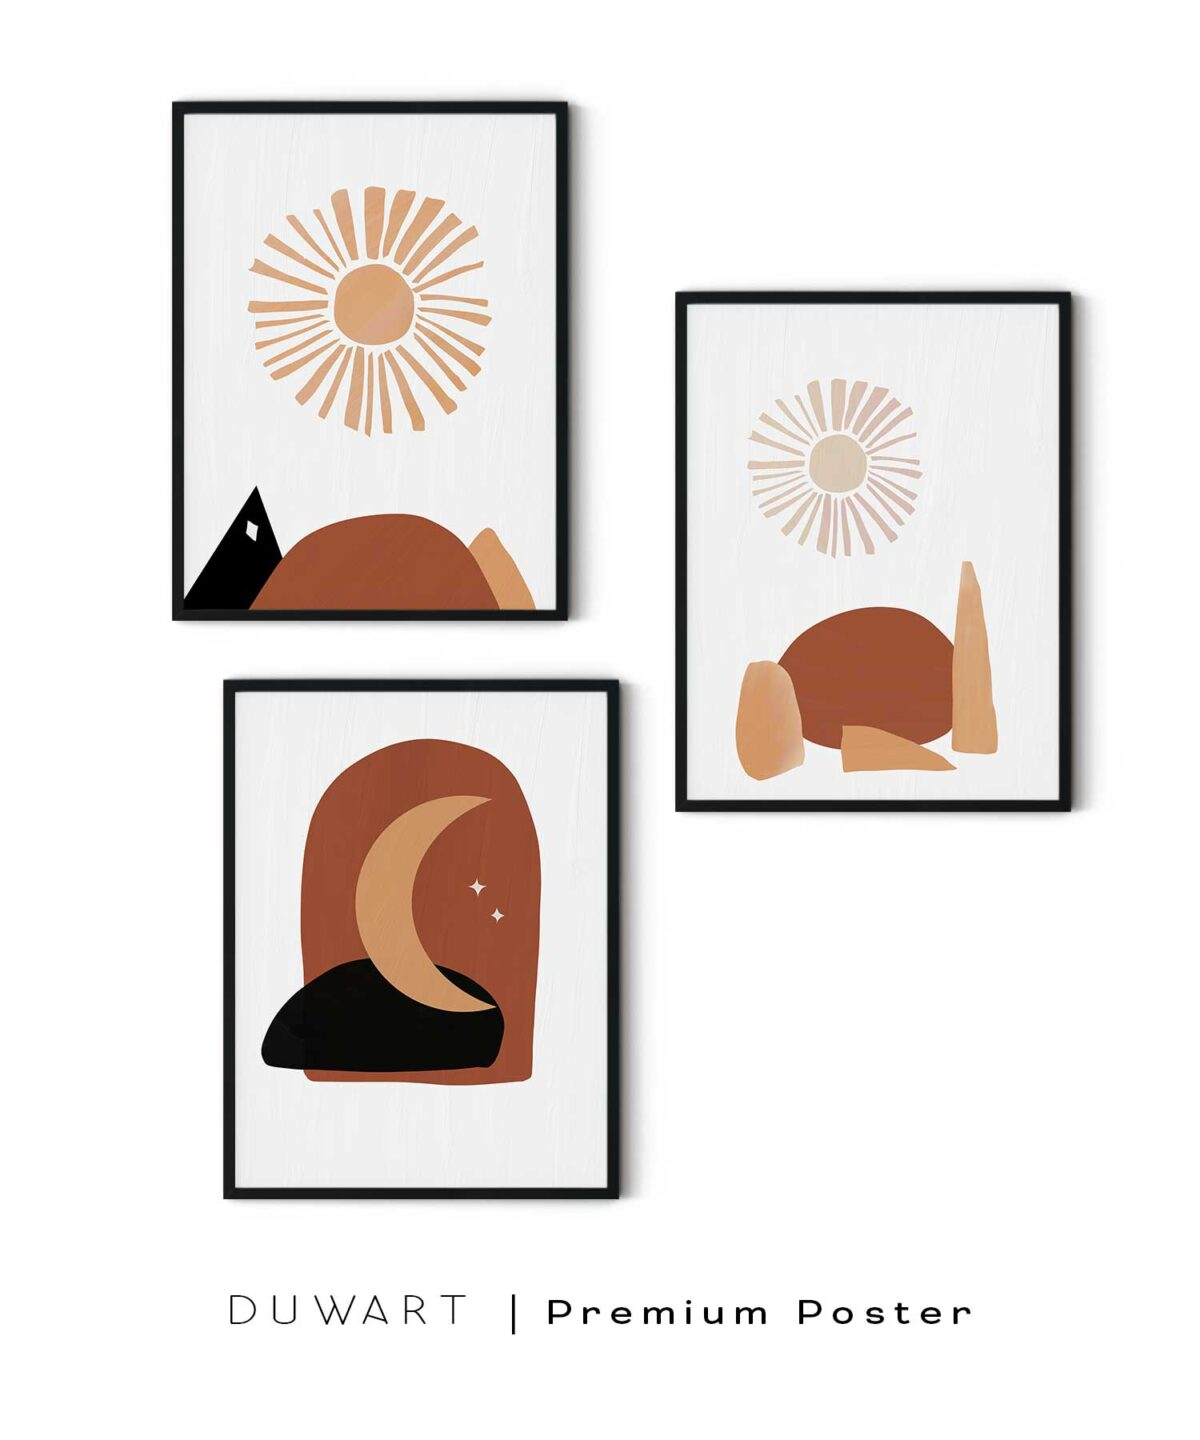 Abstract-Brown-Poster-White-Background-Duwart